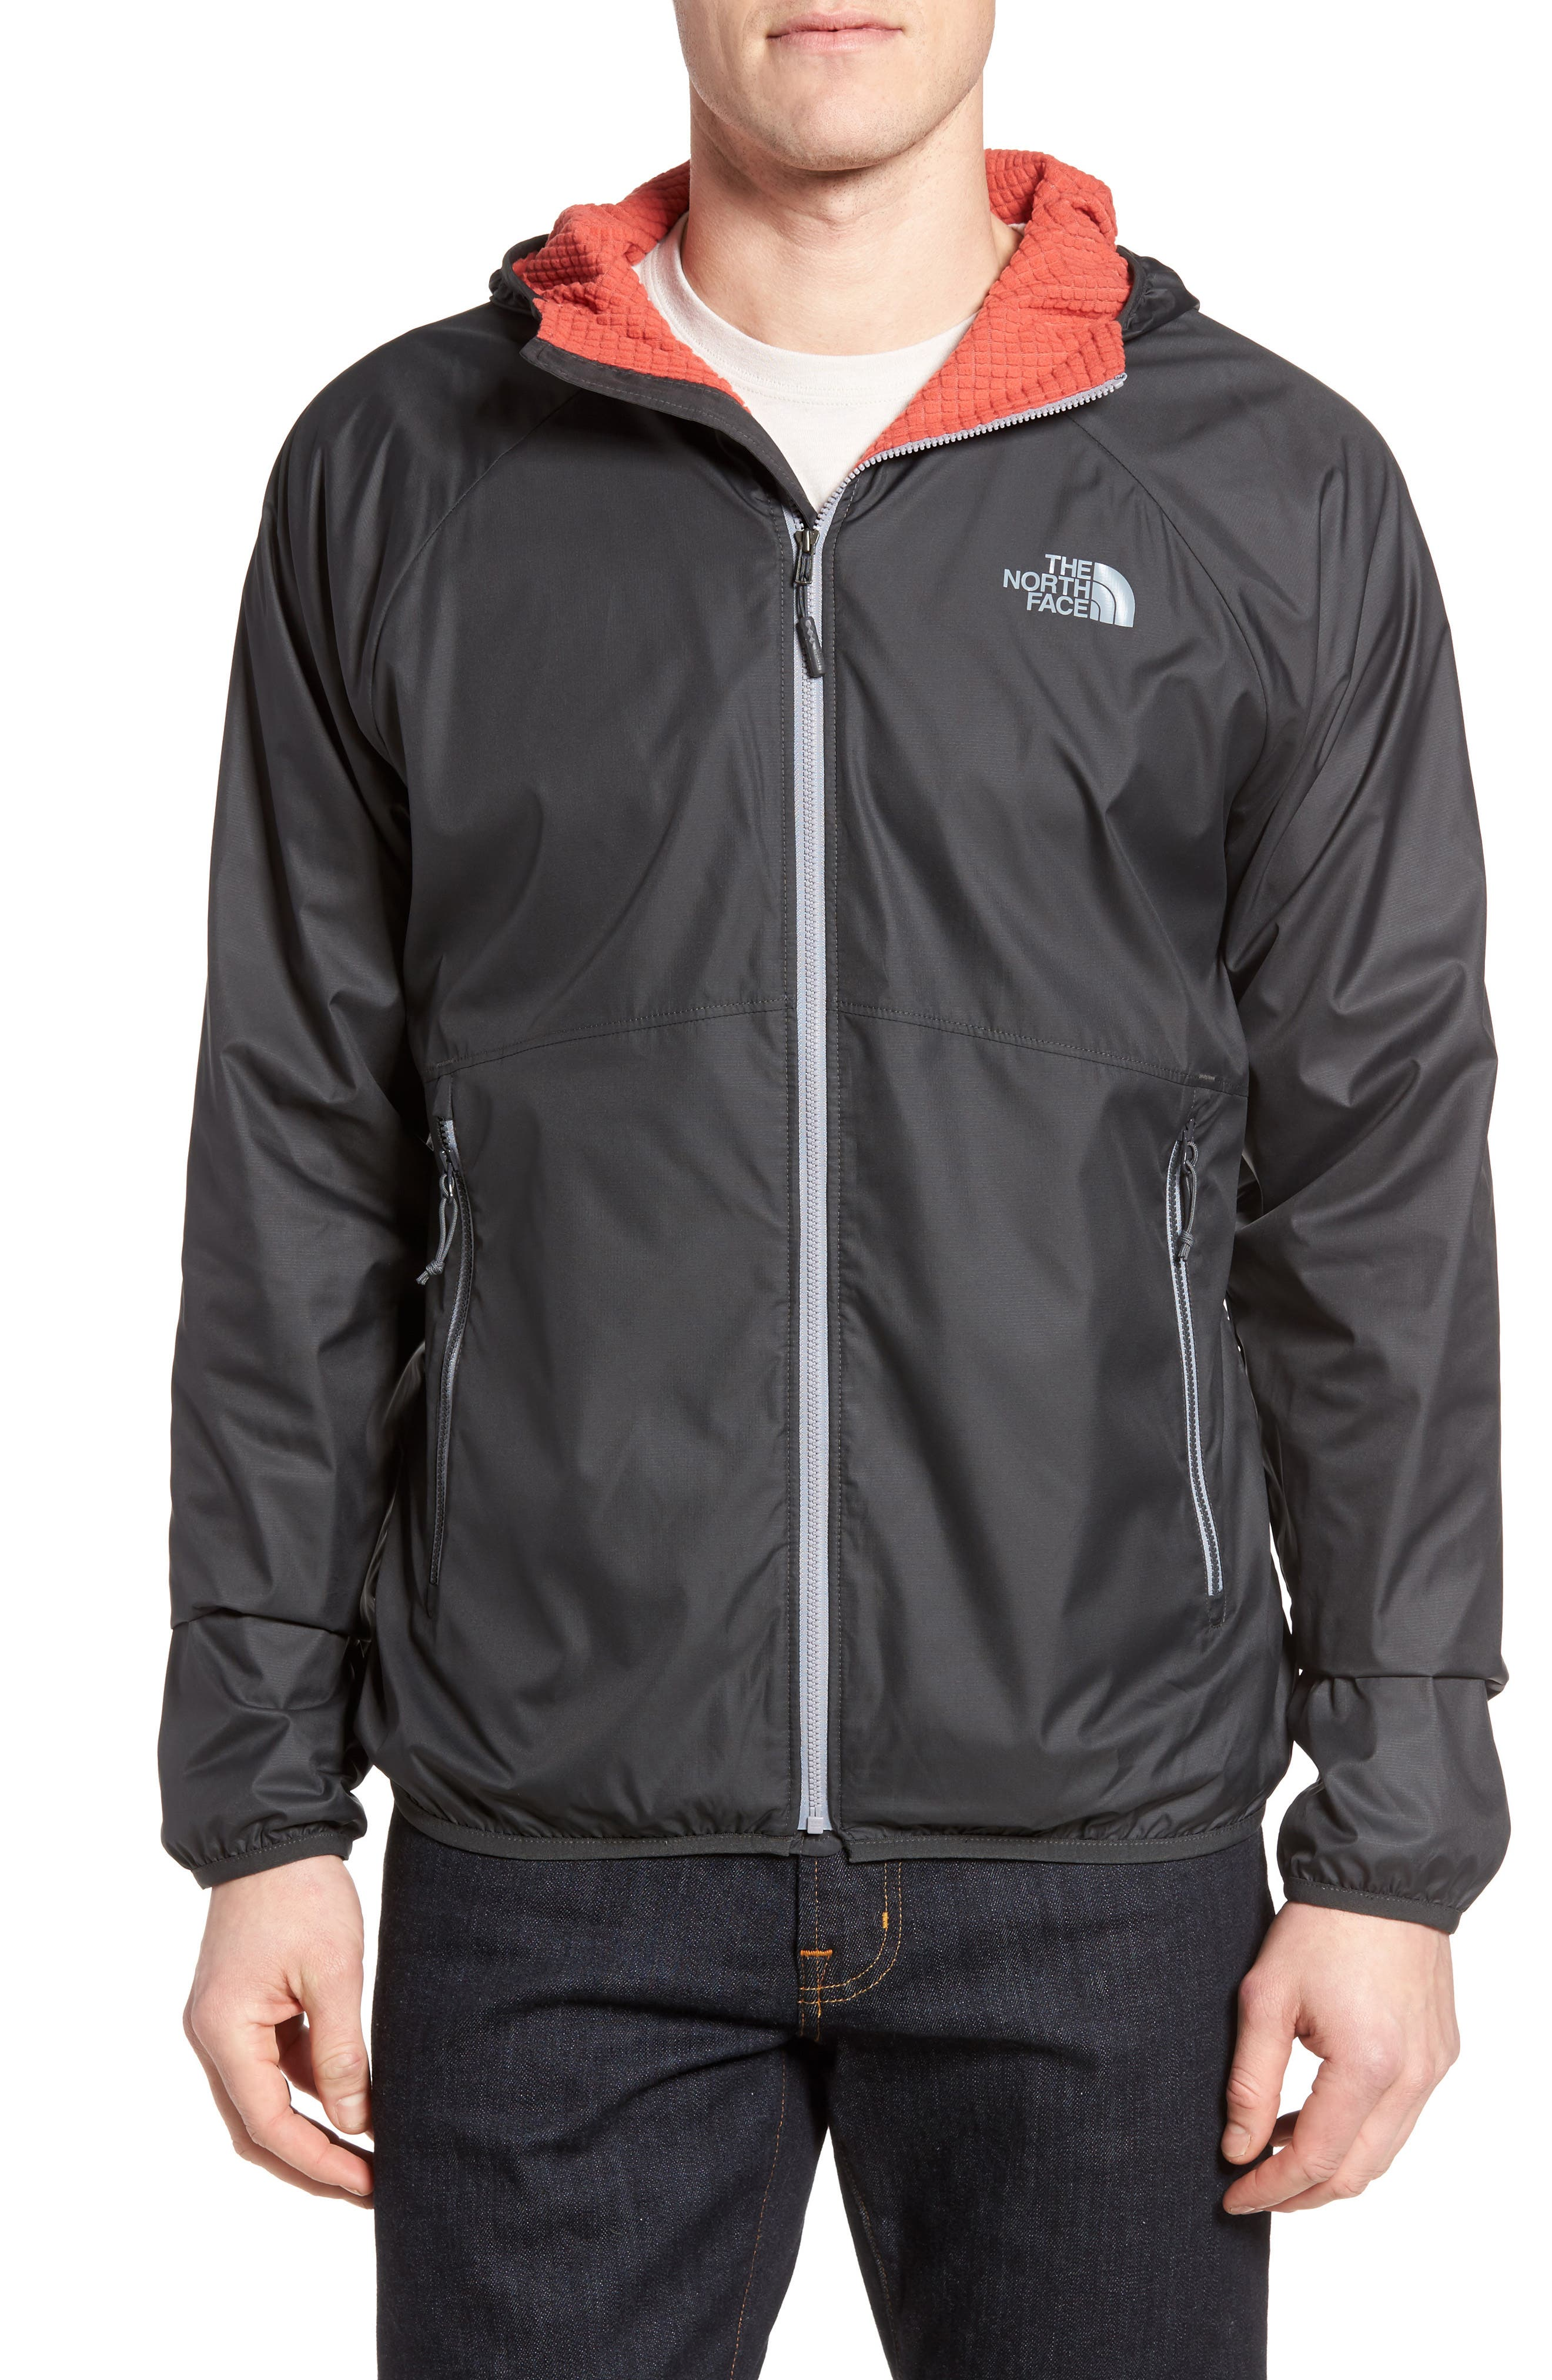 Desmond WindWall<sup>®</sup> Jacket,                         Main,                         color, Asphalt Grey/ Sunbaked Red